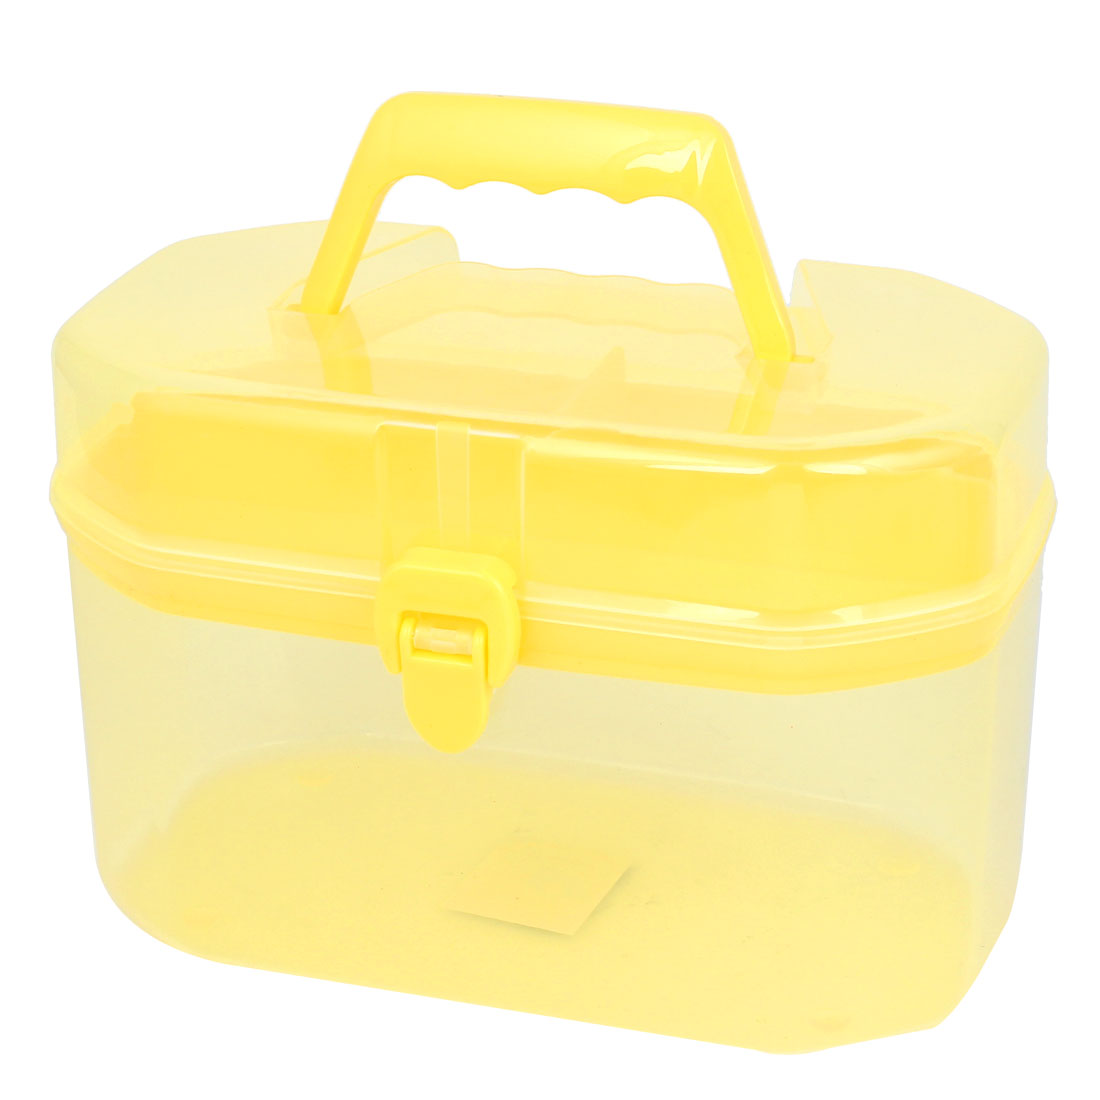 Home Family Save Room 2 Layers 4 Compartments Storage Case Box Container Yellow